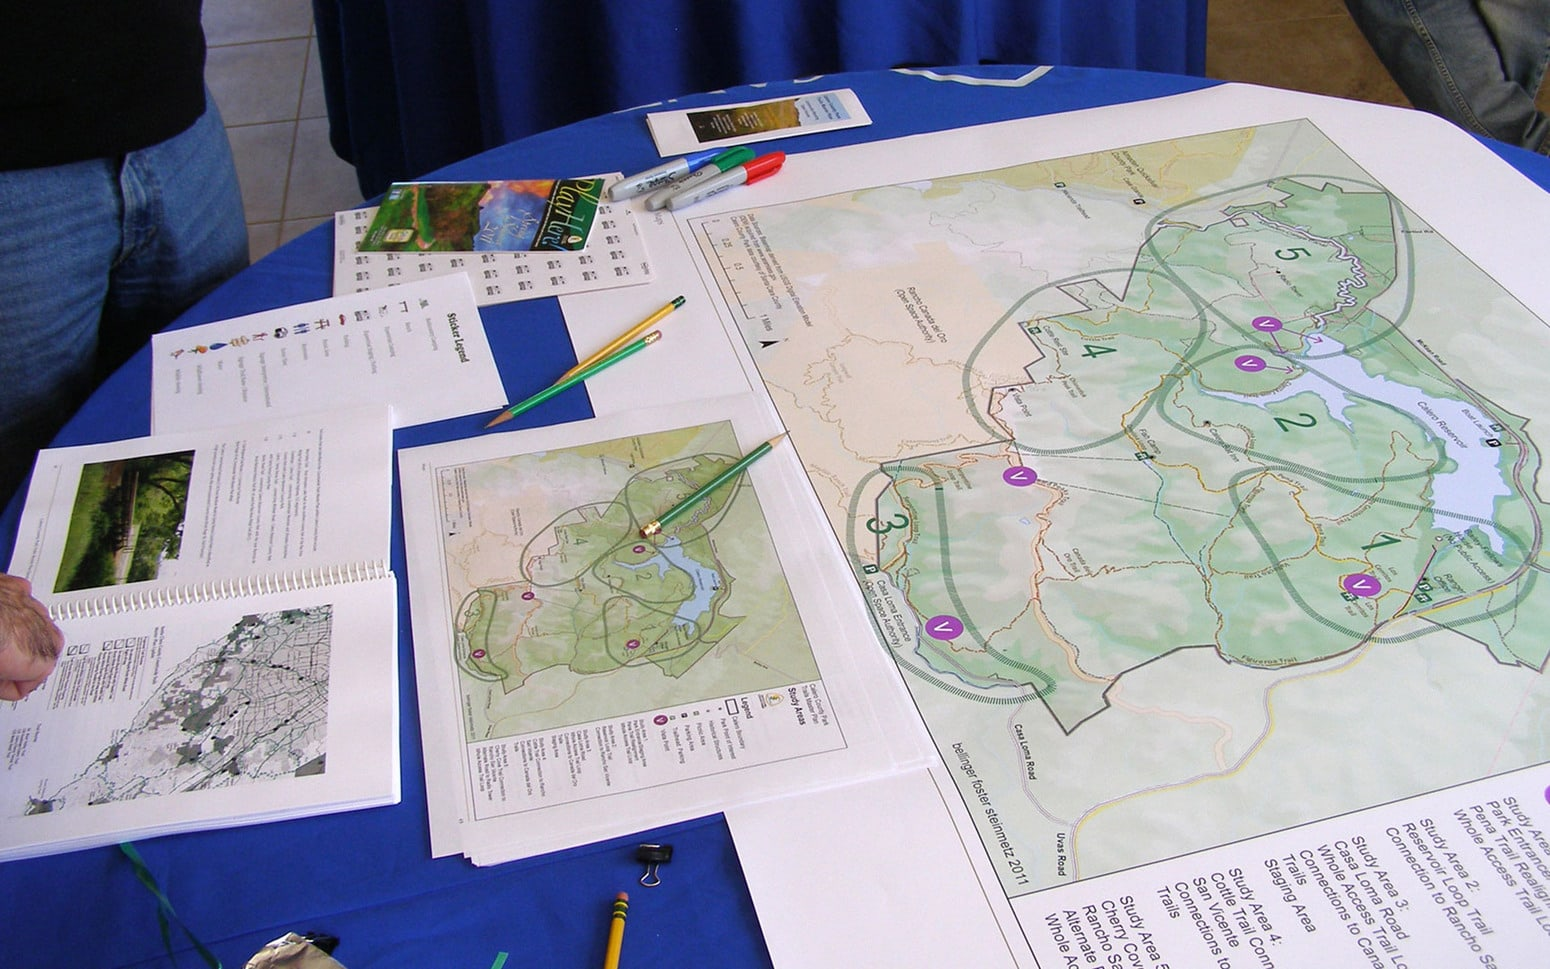 Calero County Park Trails Master Plan